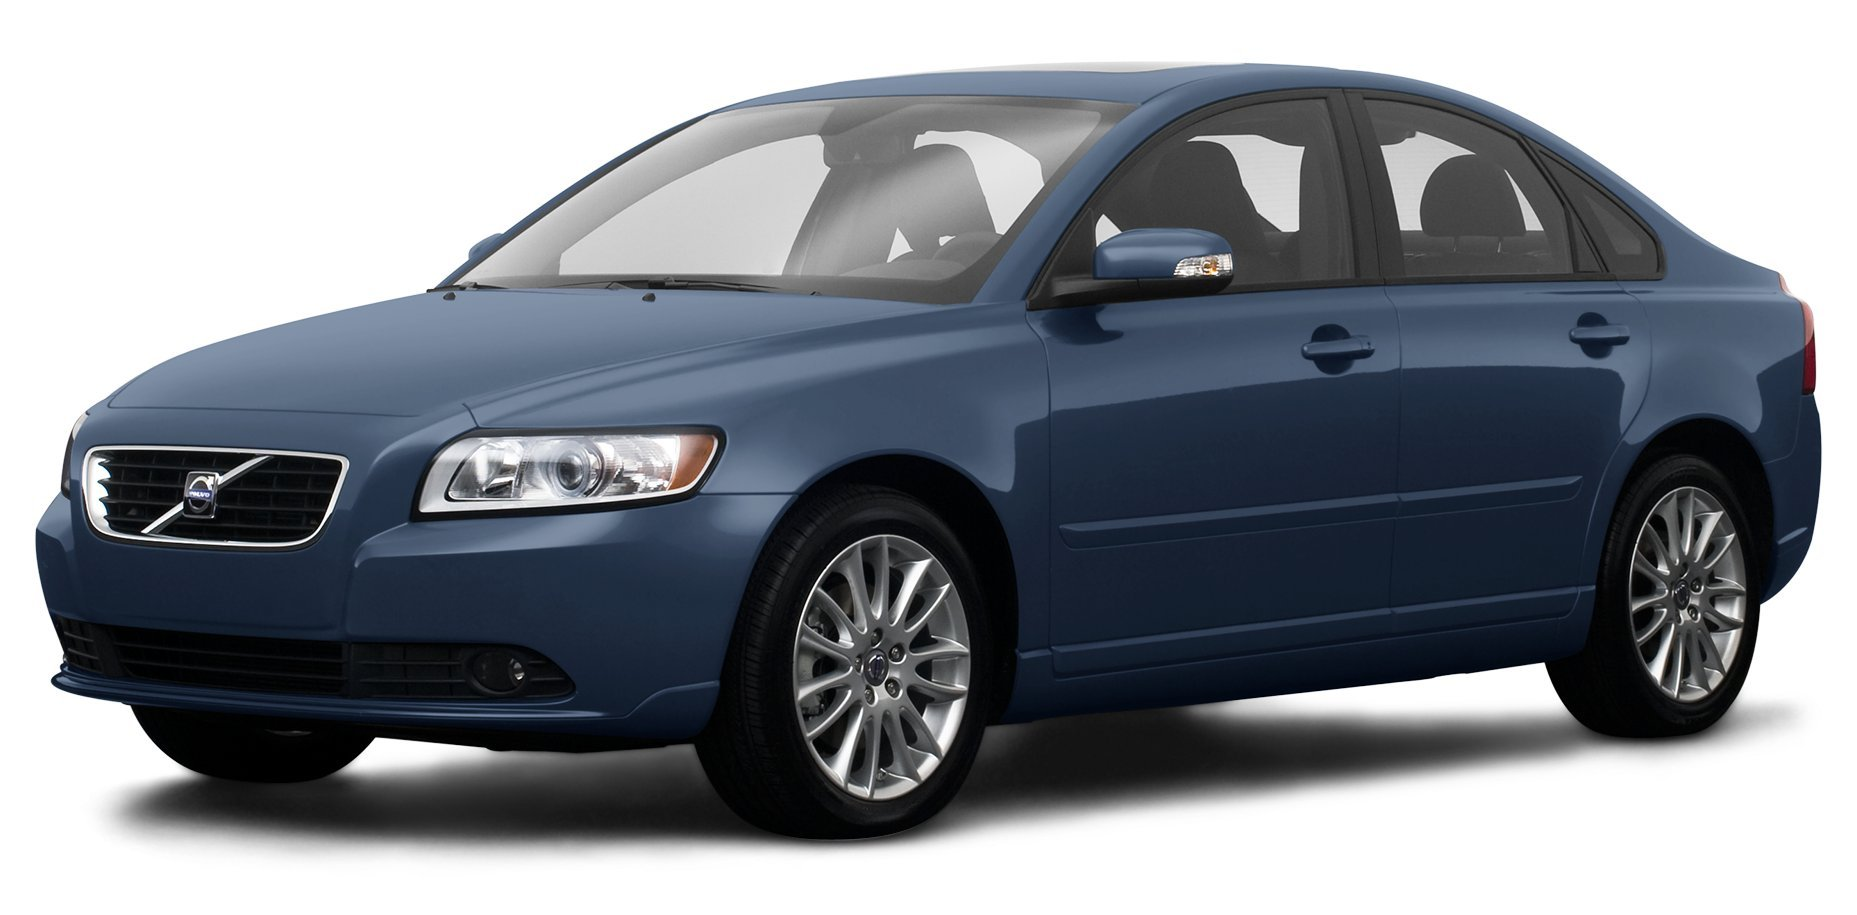 2009 Volvo S40 Reviews Images And Specs Vehicles 2001 Door Lock 24l 4 Sedan Front Wheel Drive